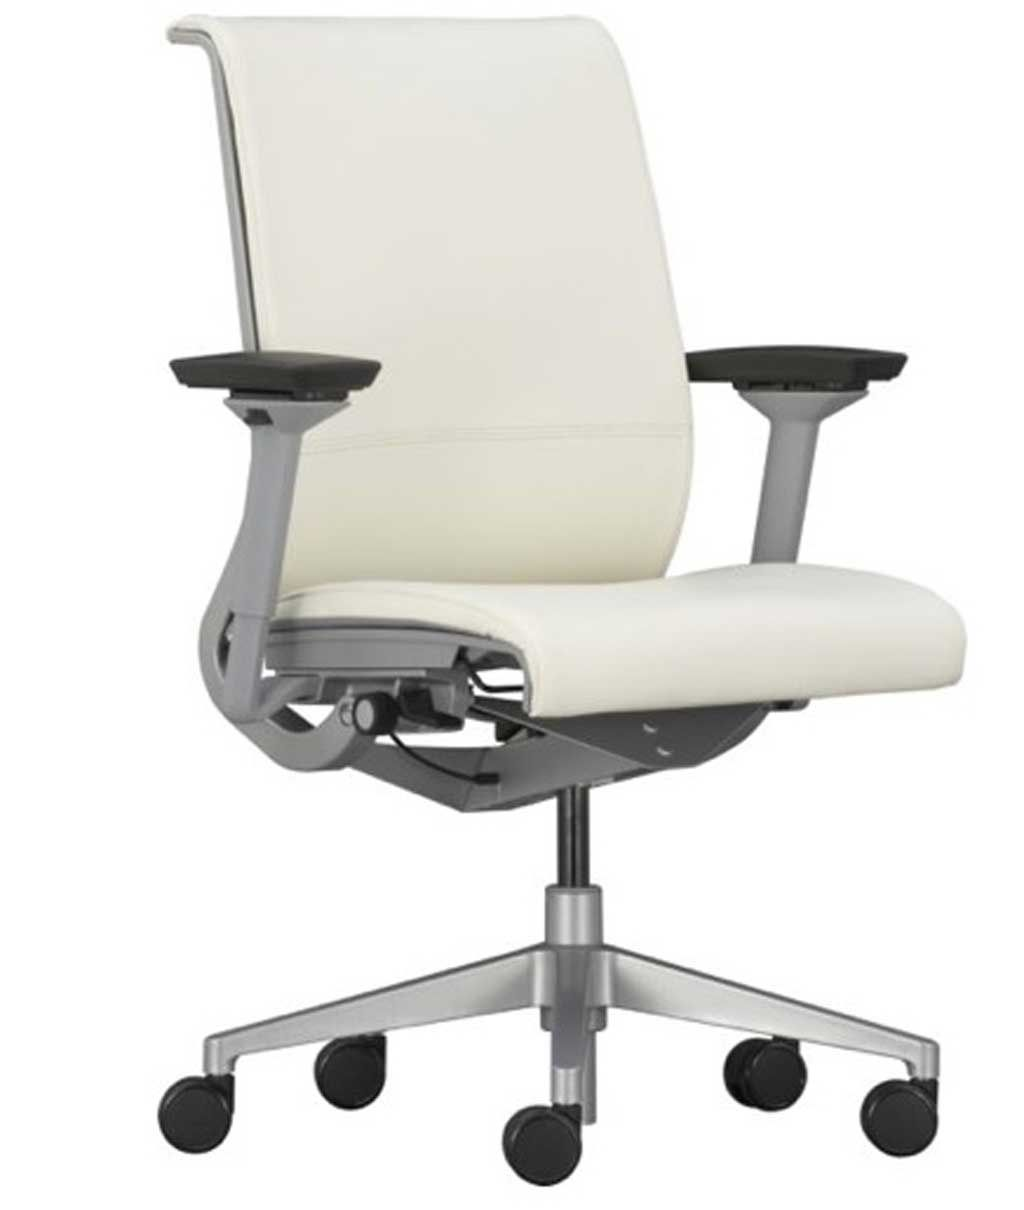 modern genuine white leather office seating designs - Modern Genuine White Leather Office Seating Designs Office Design